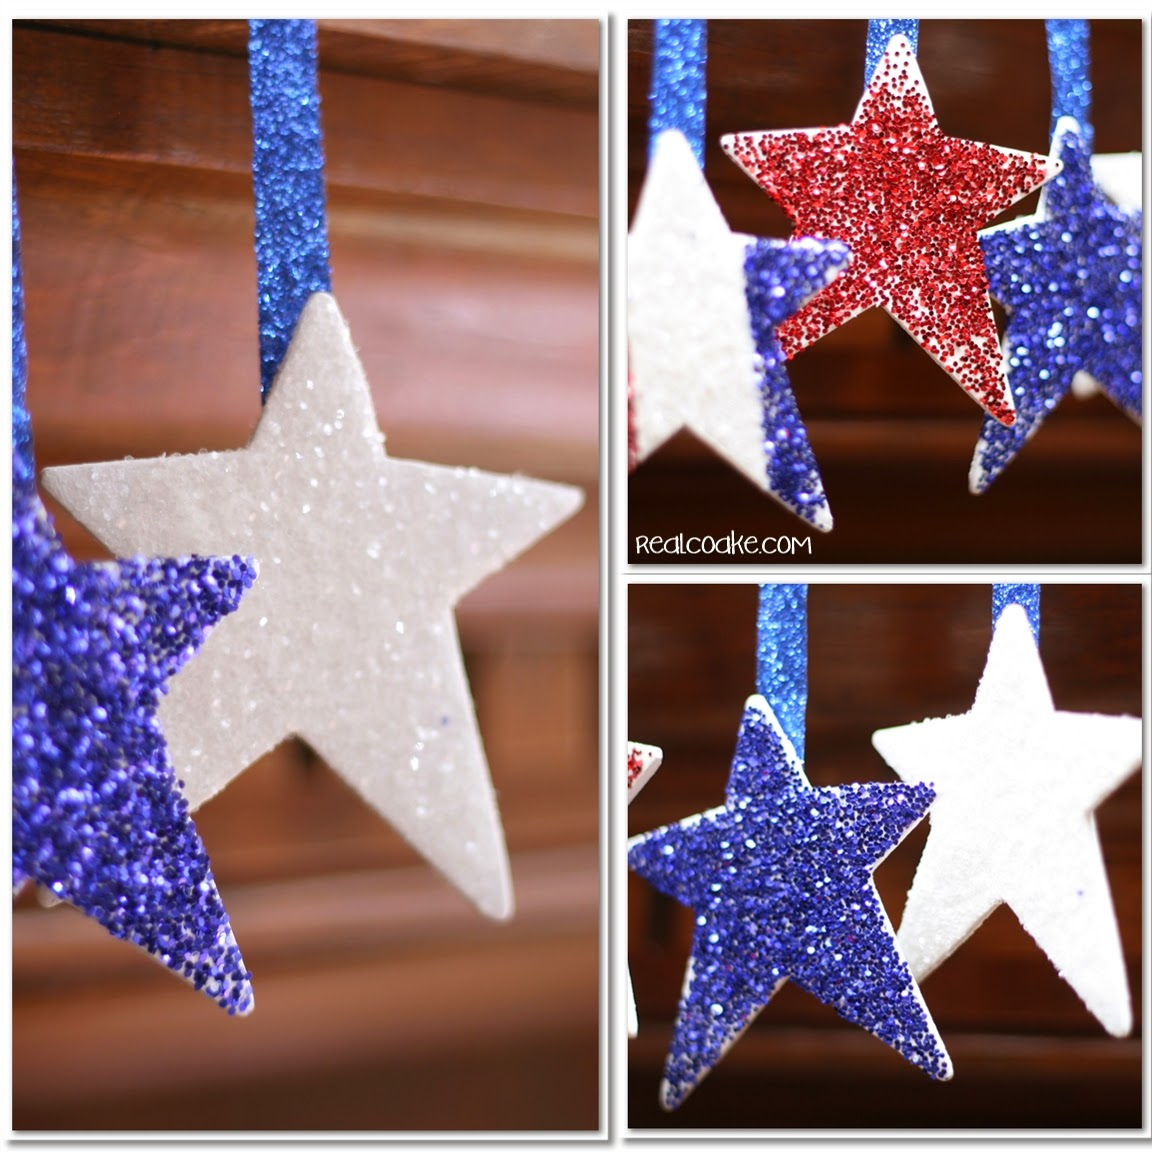 Th of july crafts make patriotic glitter stars